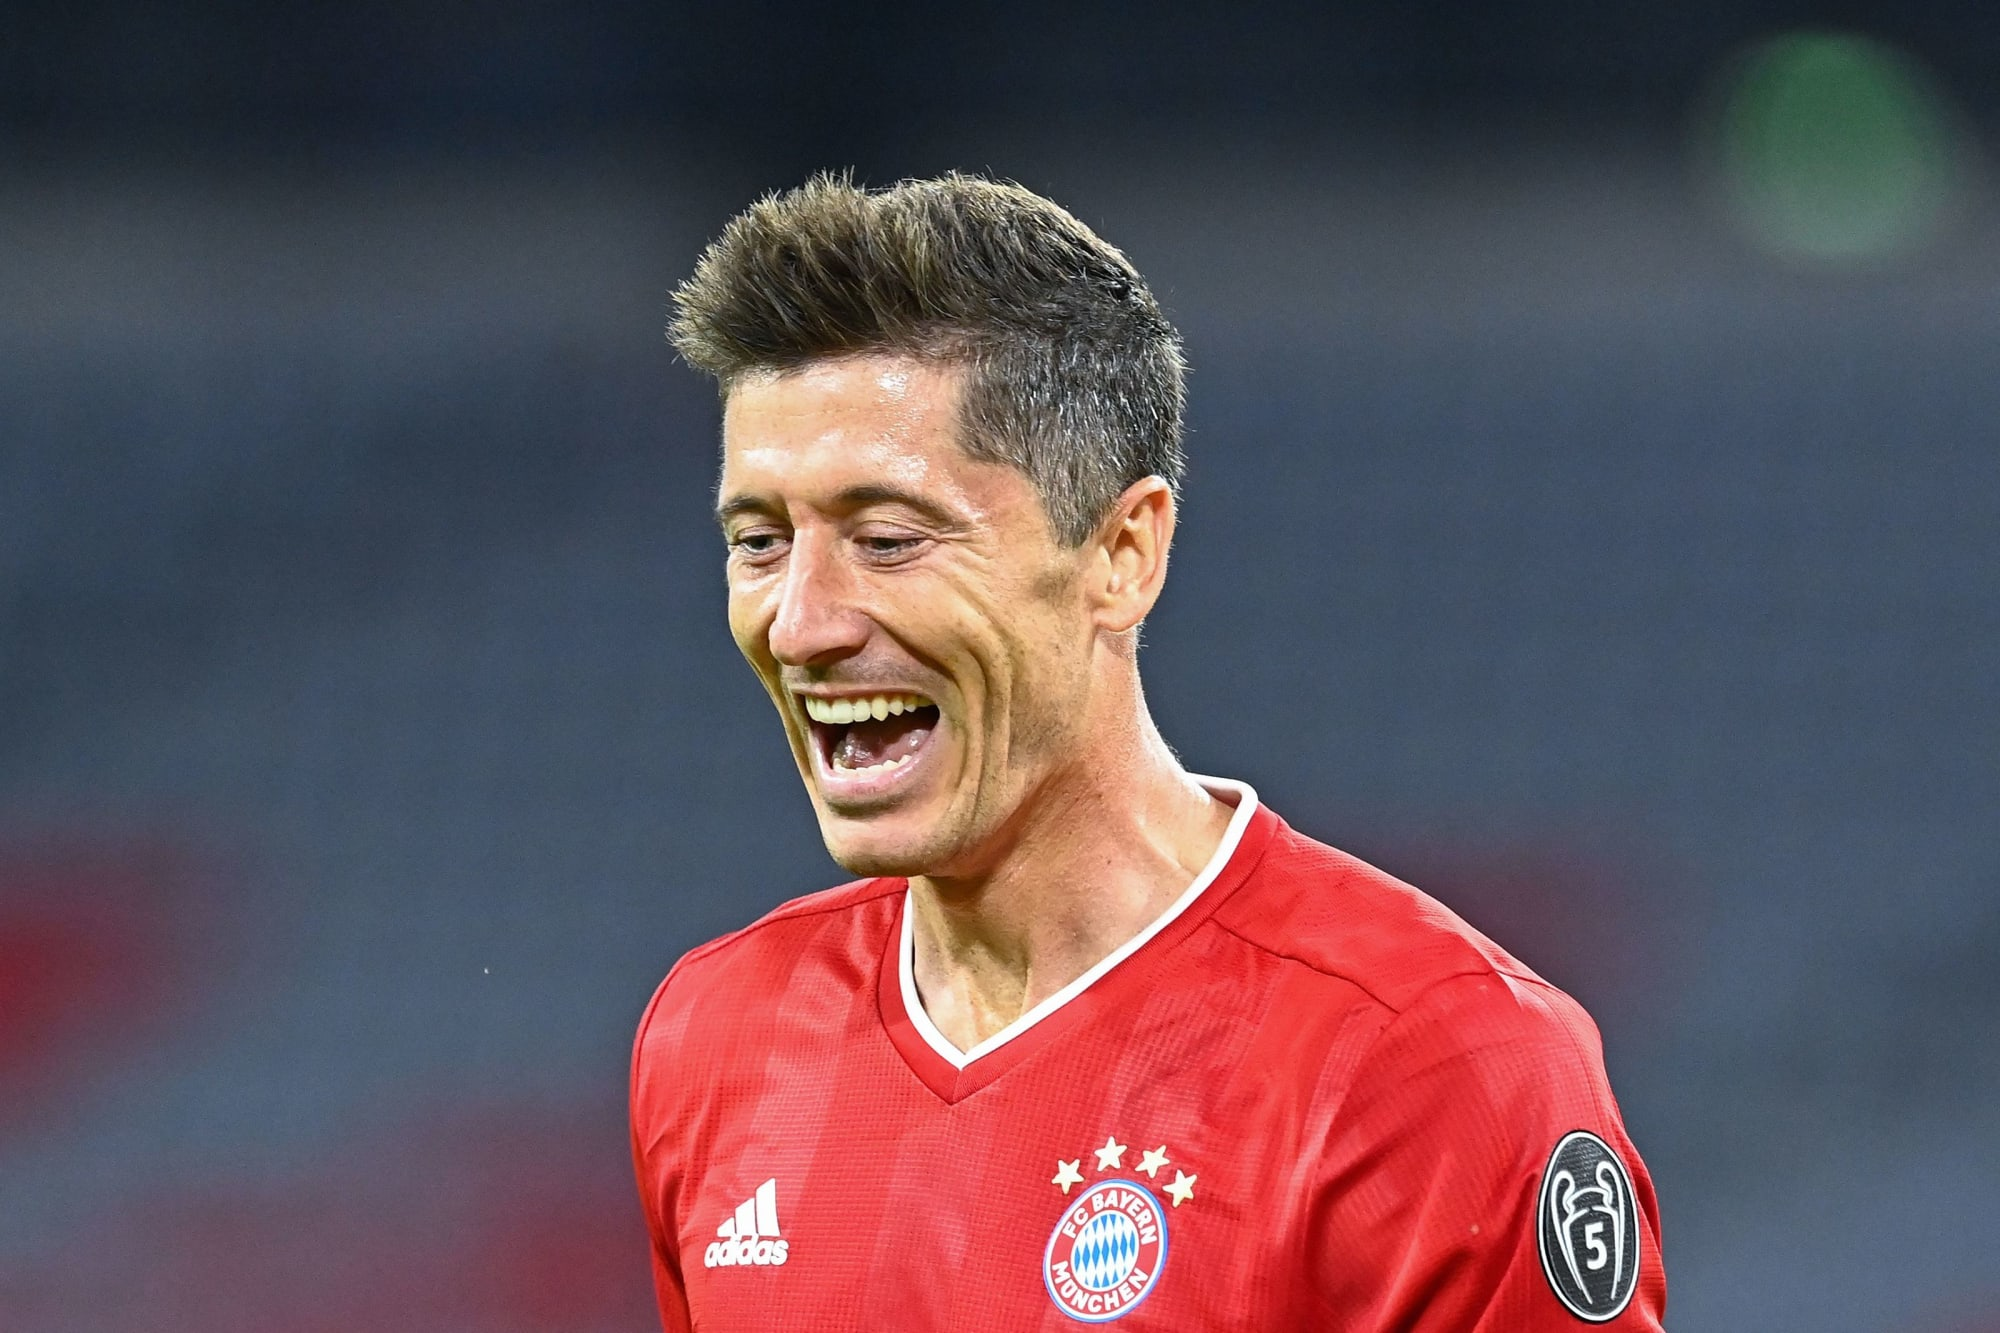 Bayern Munich vs. Barcelona: Is it too early to predict the winner?